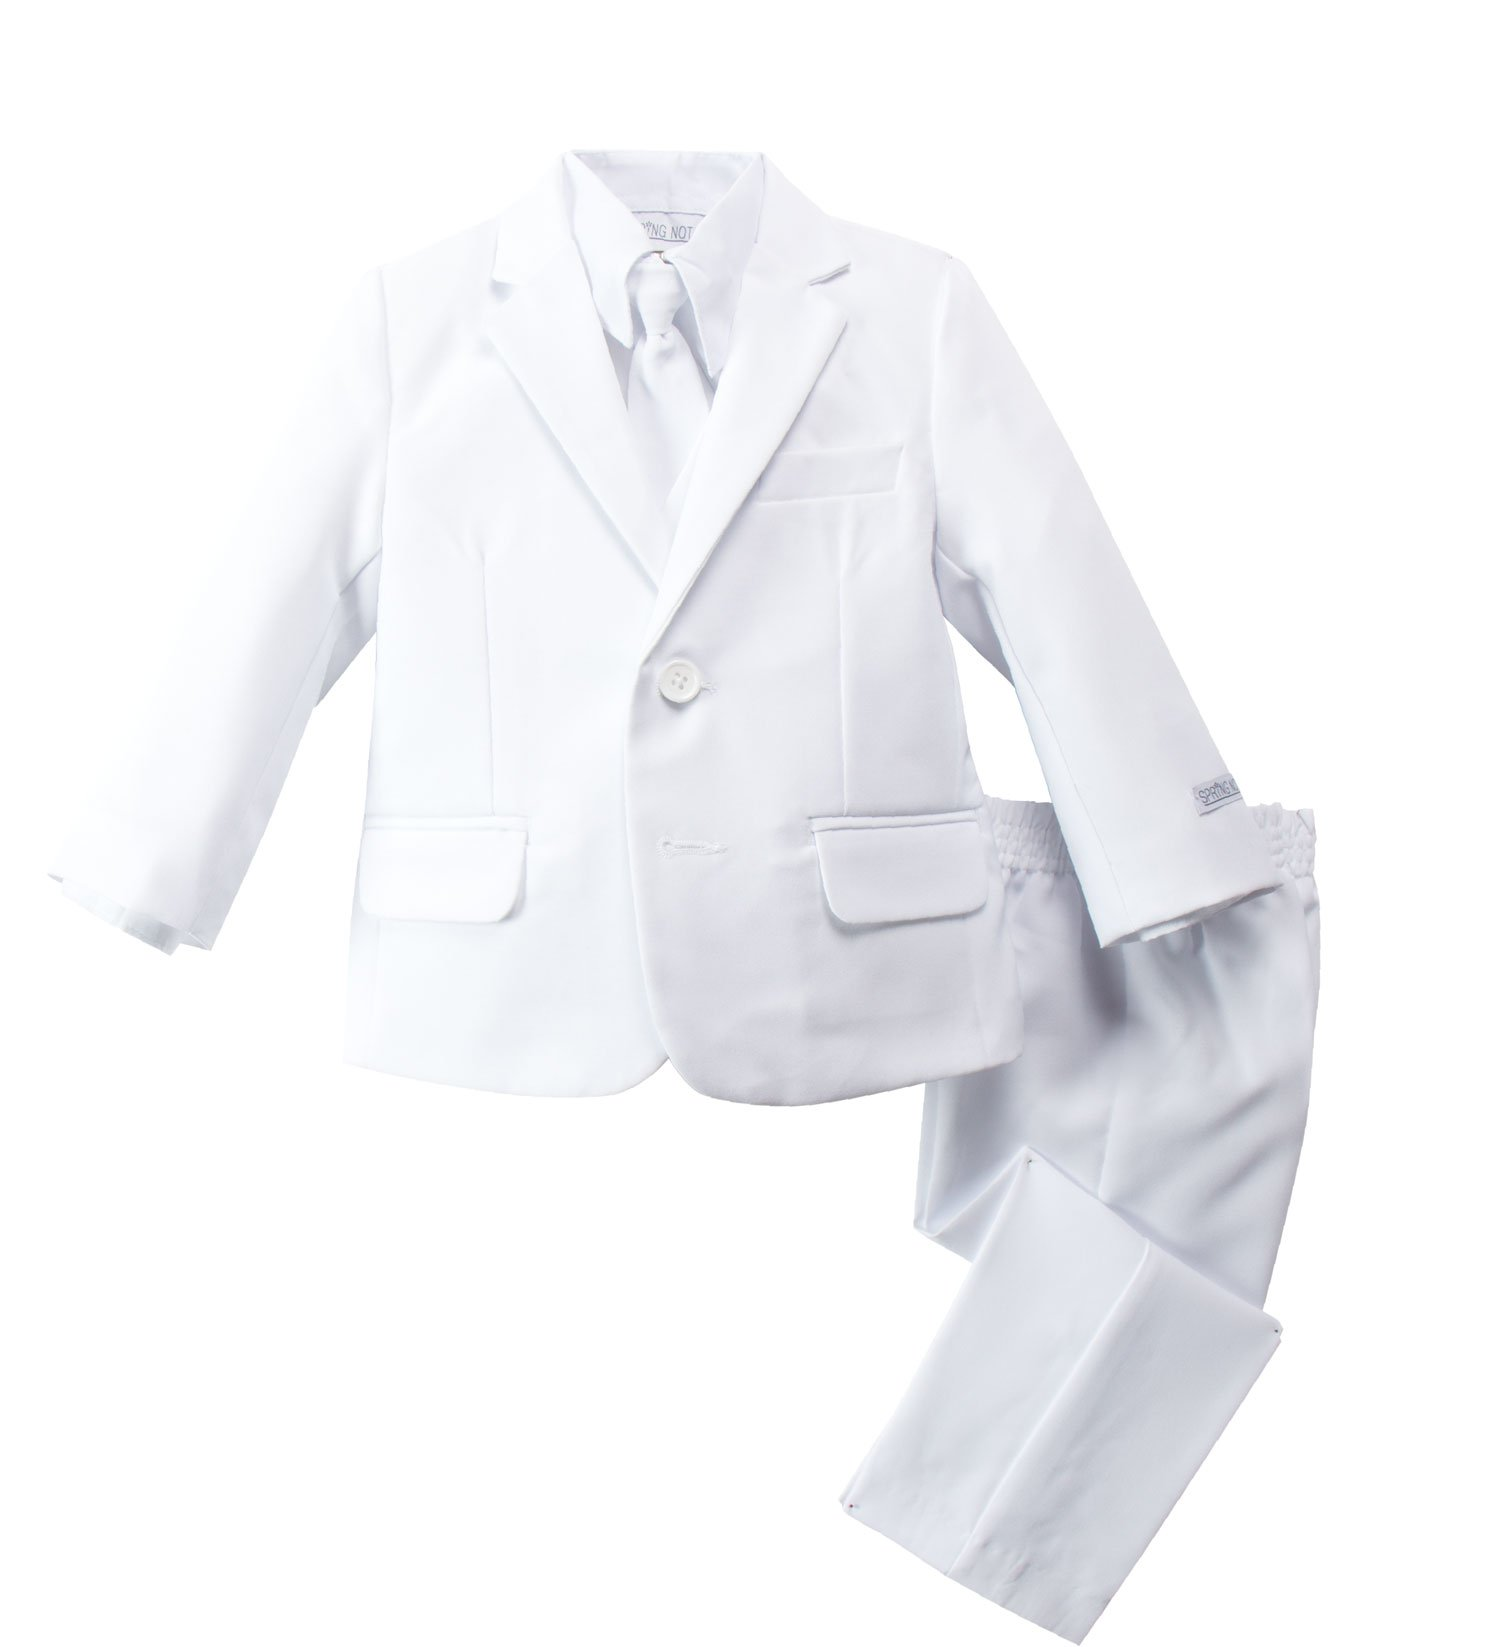 Spring Notion Baby Boys' Modern Fit Dress Suit Set 3T White by Spring Notion